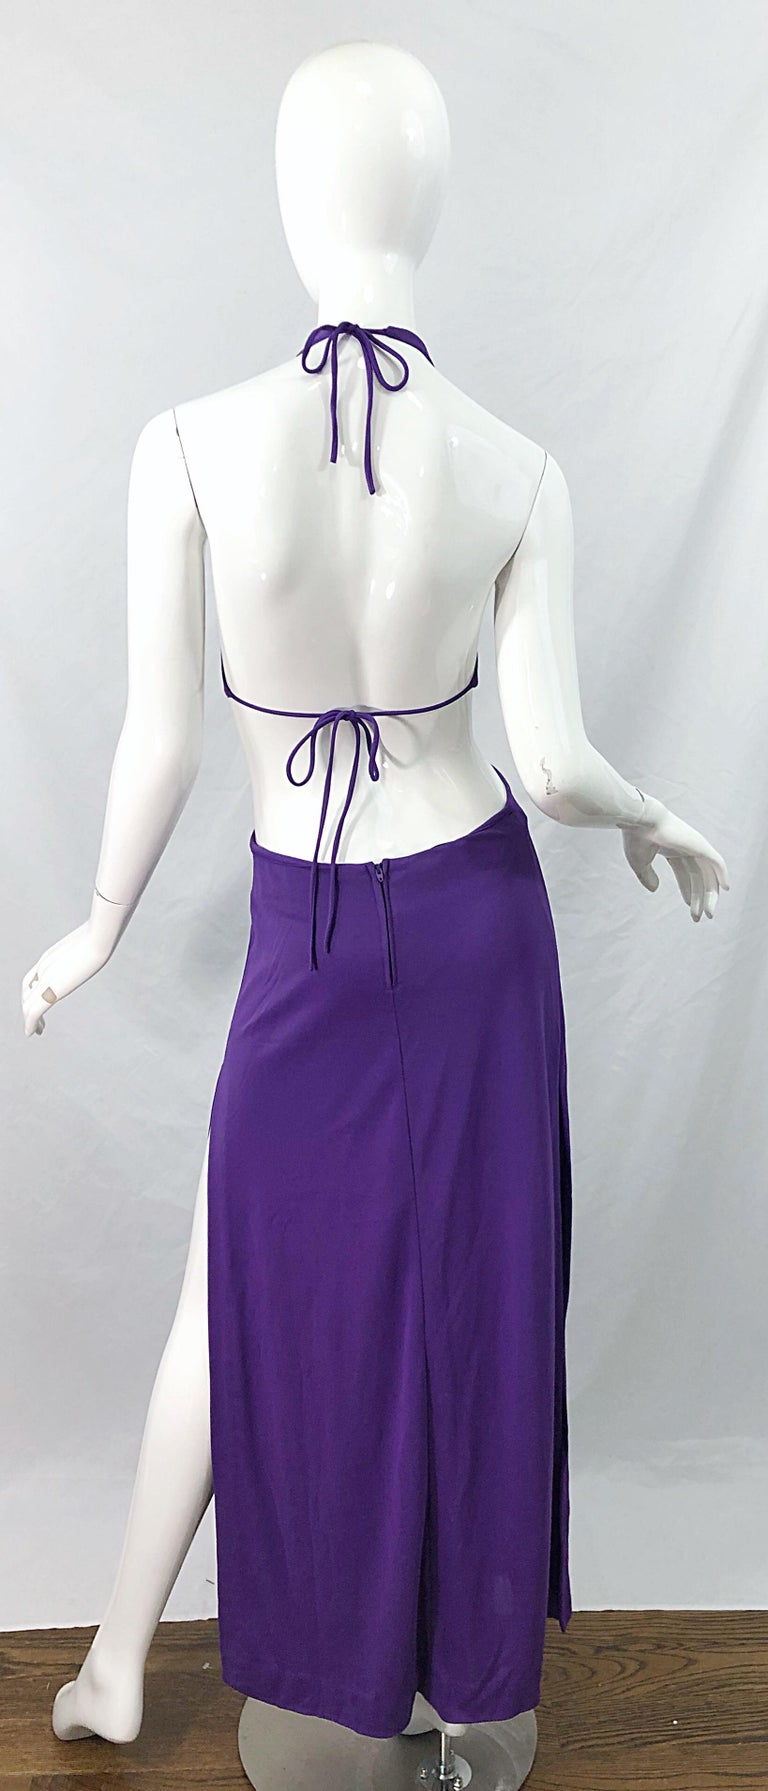 1970s Purple Cut - Out Sexy Jersey Vintage 70s Halter Maxi Dress Gown In Excellent Condition For Sale In Chicago, IL